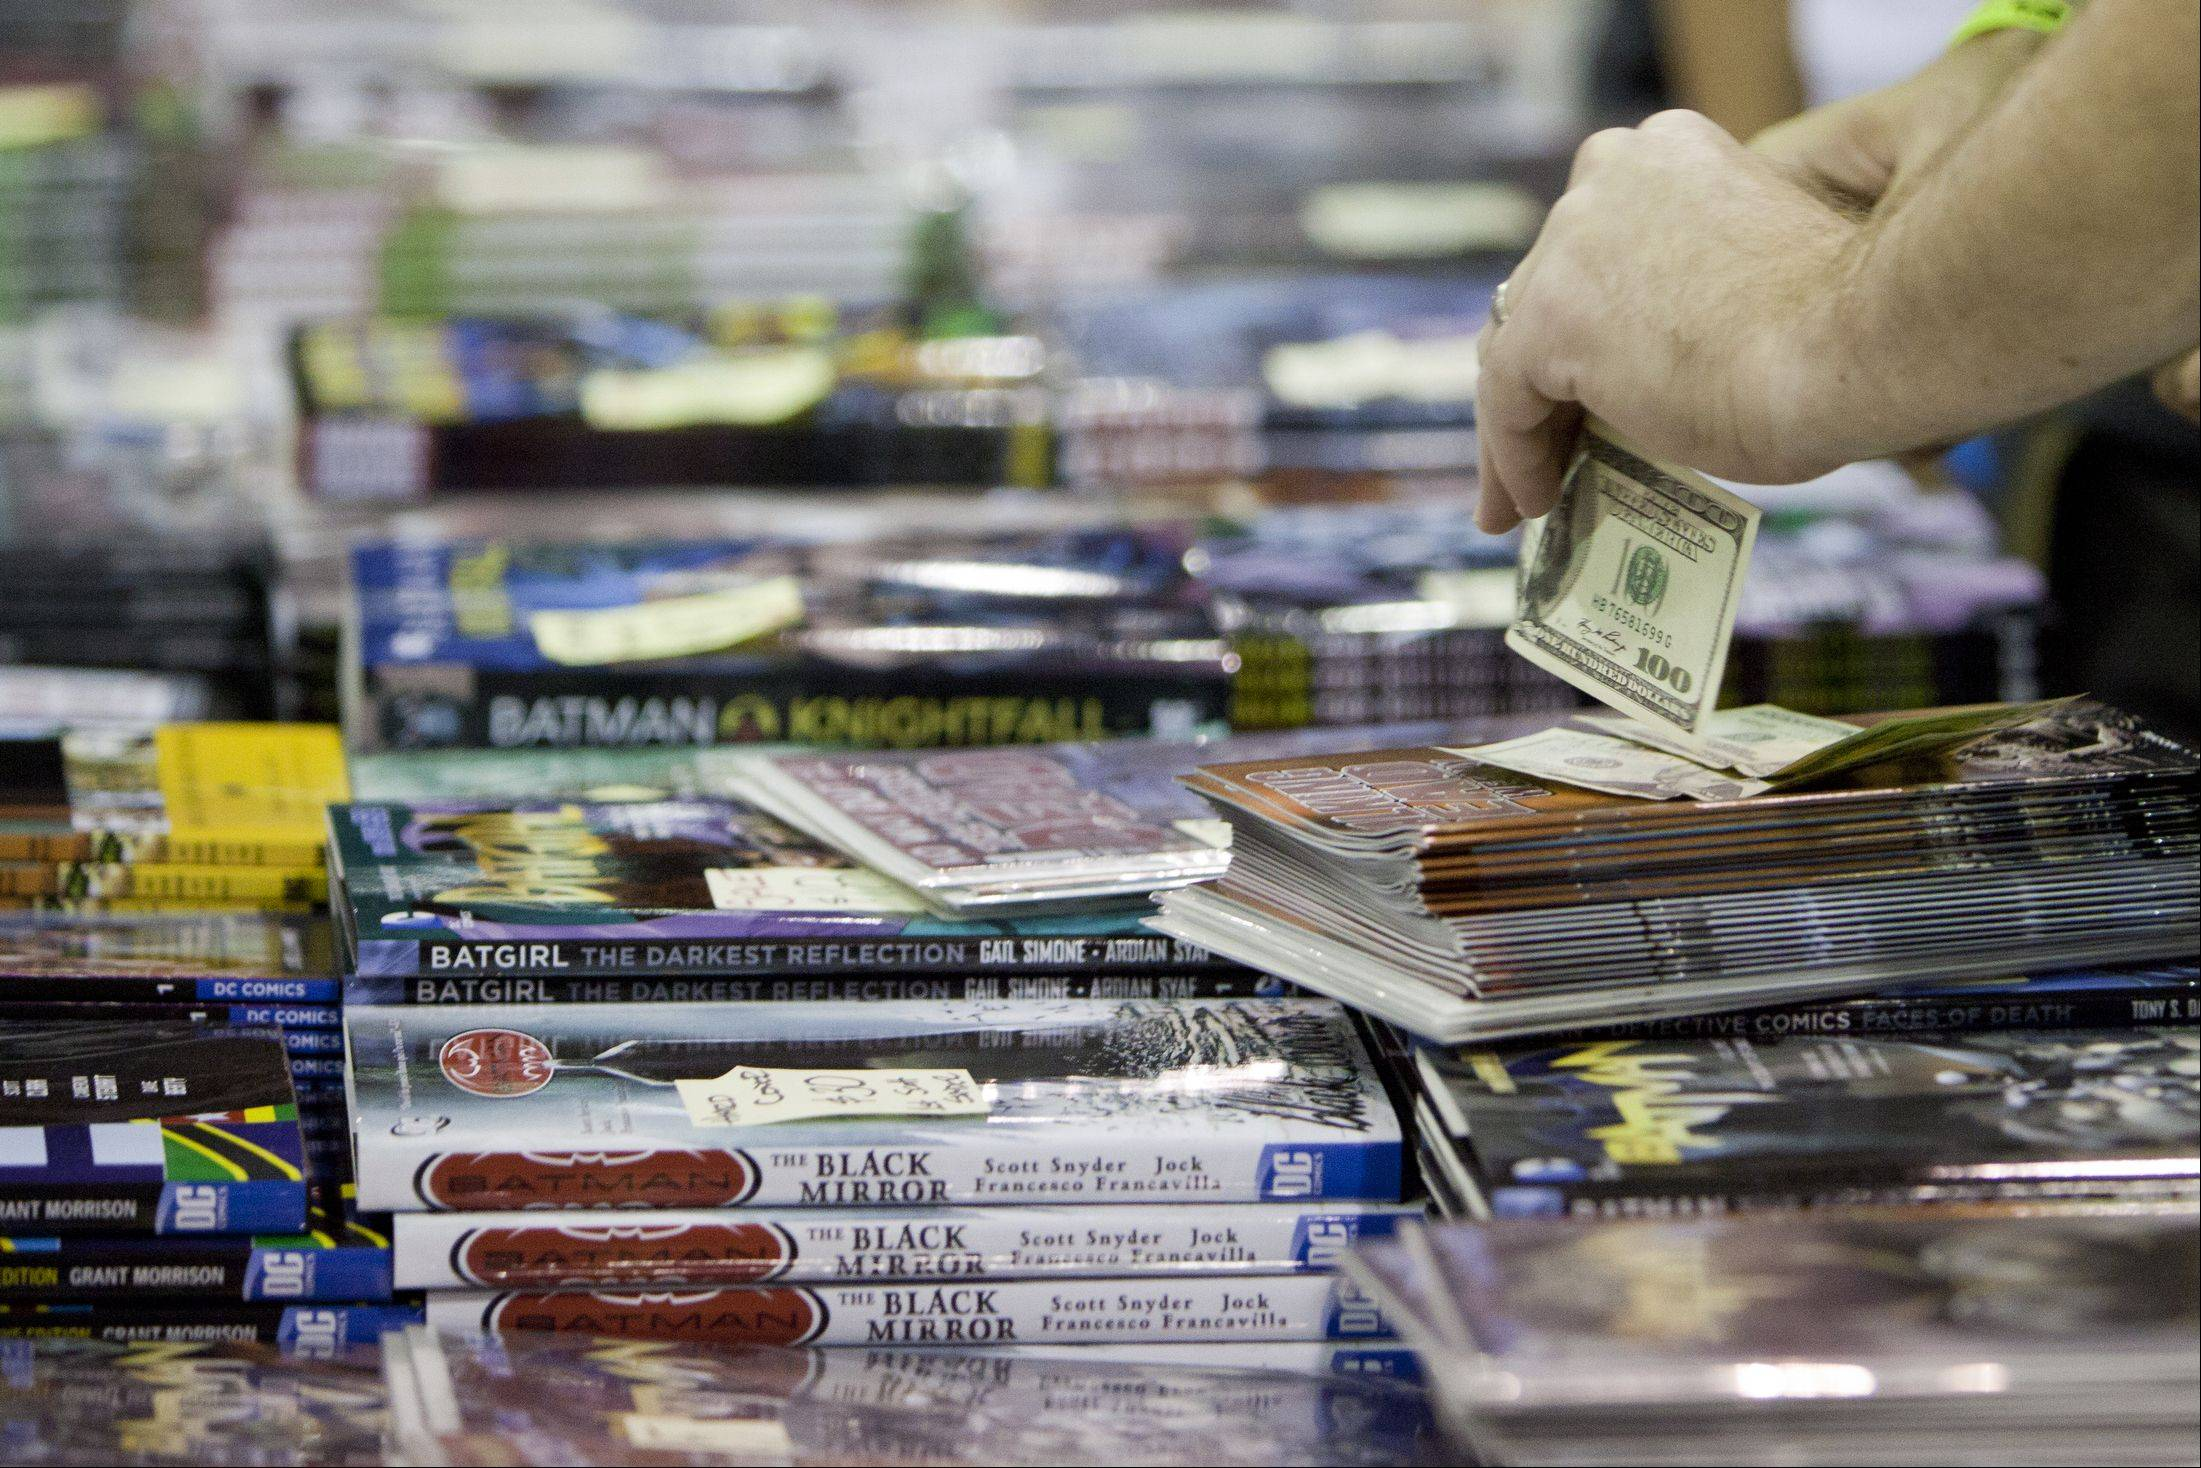 A Comic Con attendee hands over a few hundred dollars for some collectible DC Comics at the annual Wizard World Chicago Comic Con at the Donald E. Stephens Convention Center in Rosemont.